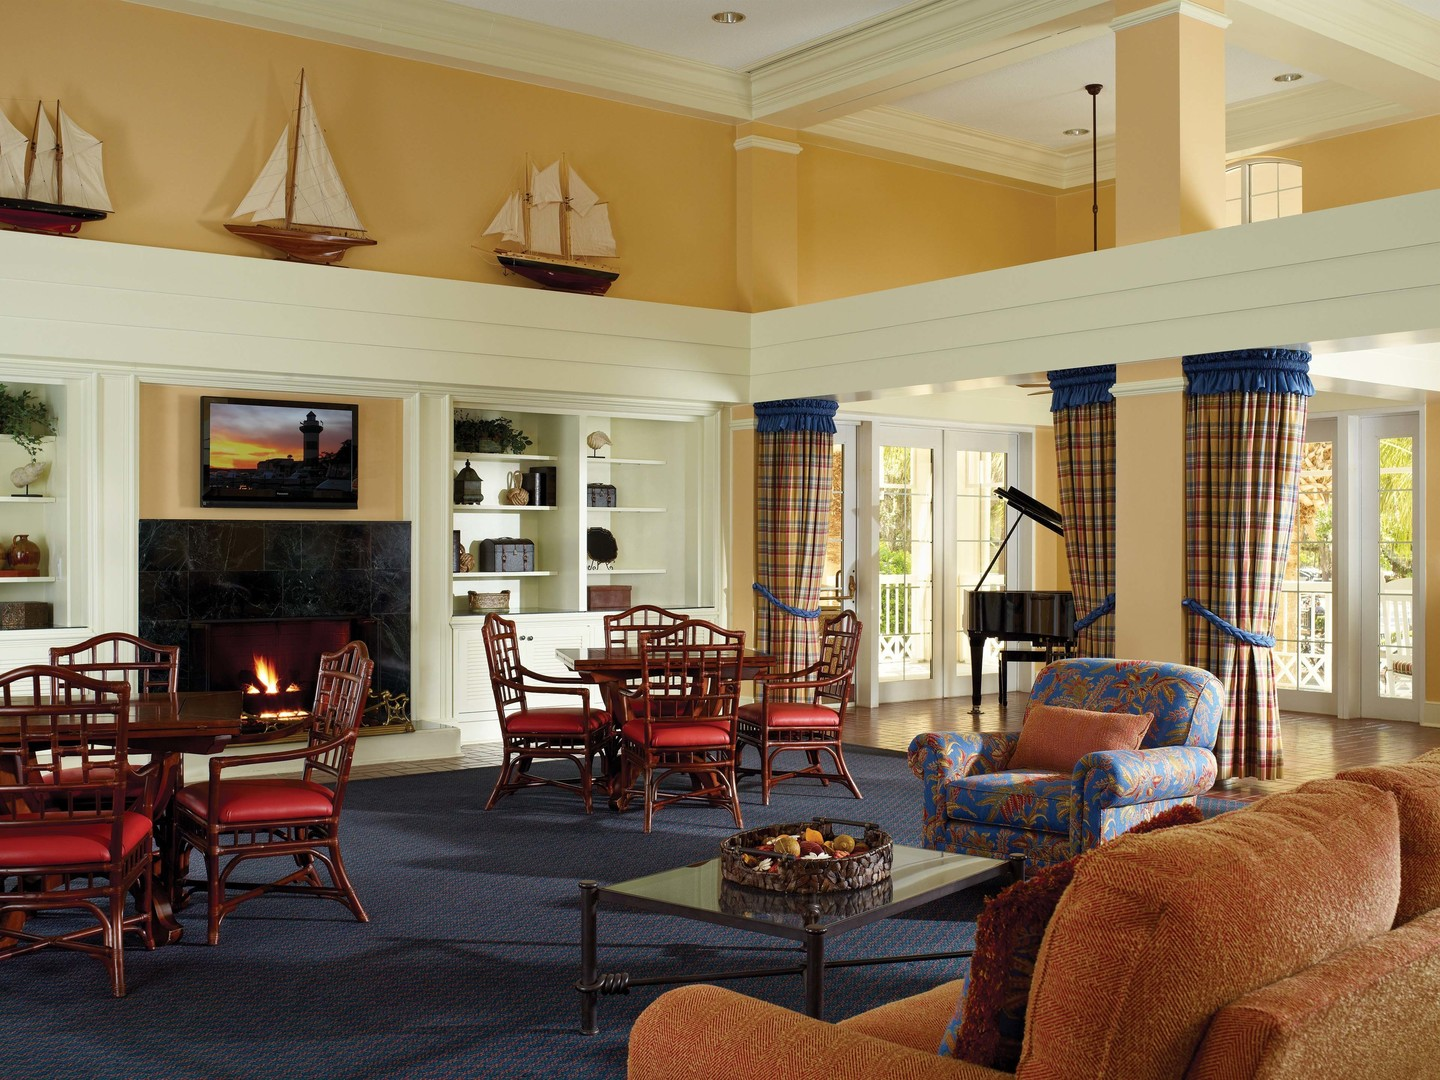 Marriott's Harbour Club Lobby. Marriott's Harbour Club is located in Hilton Head Island, South Carolina United States.